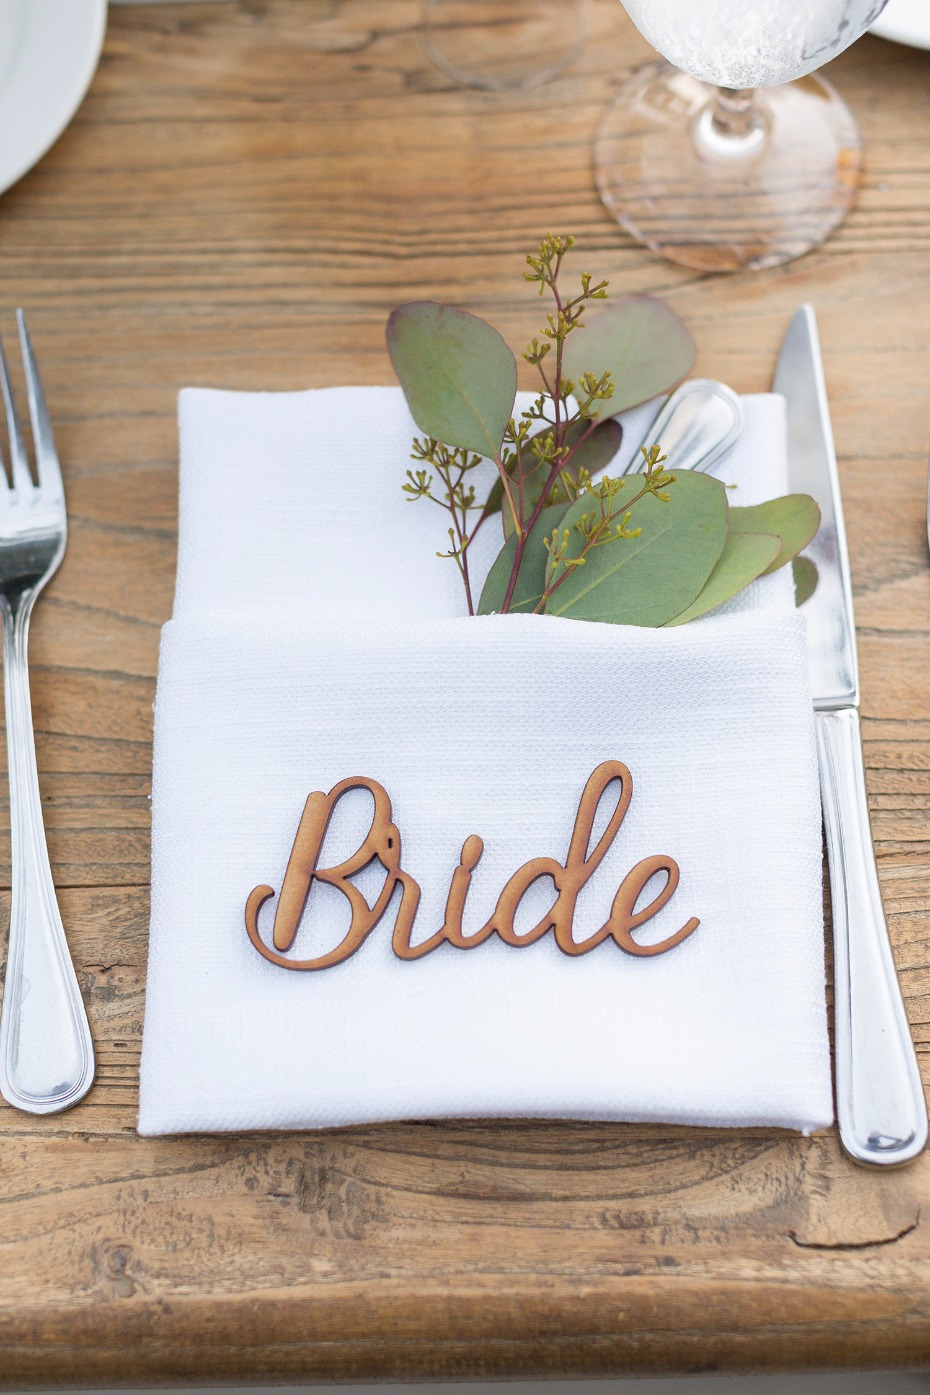 Bride place card idea